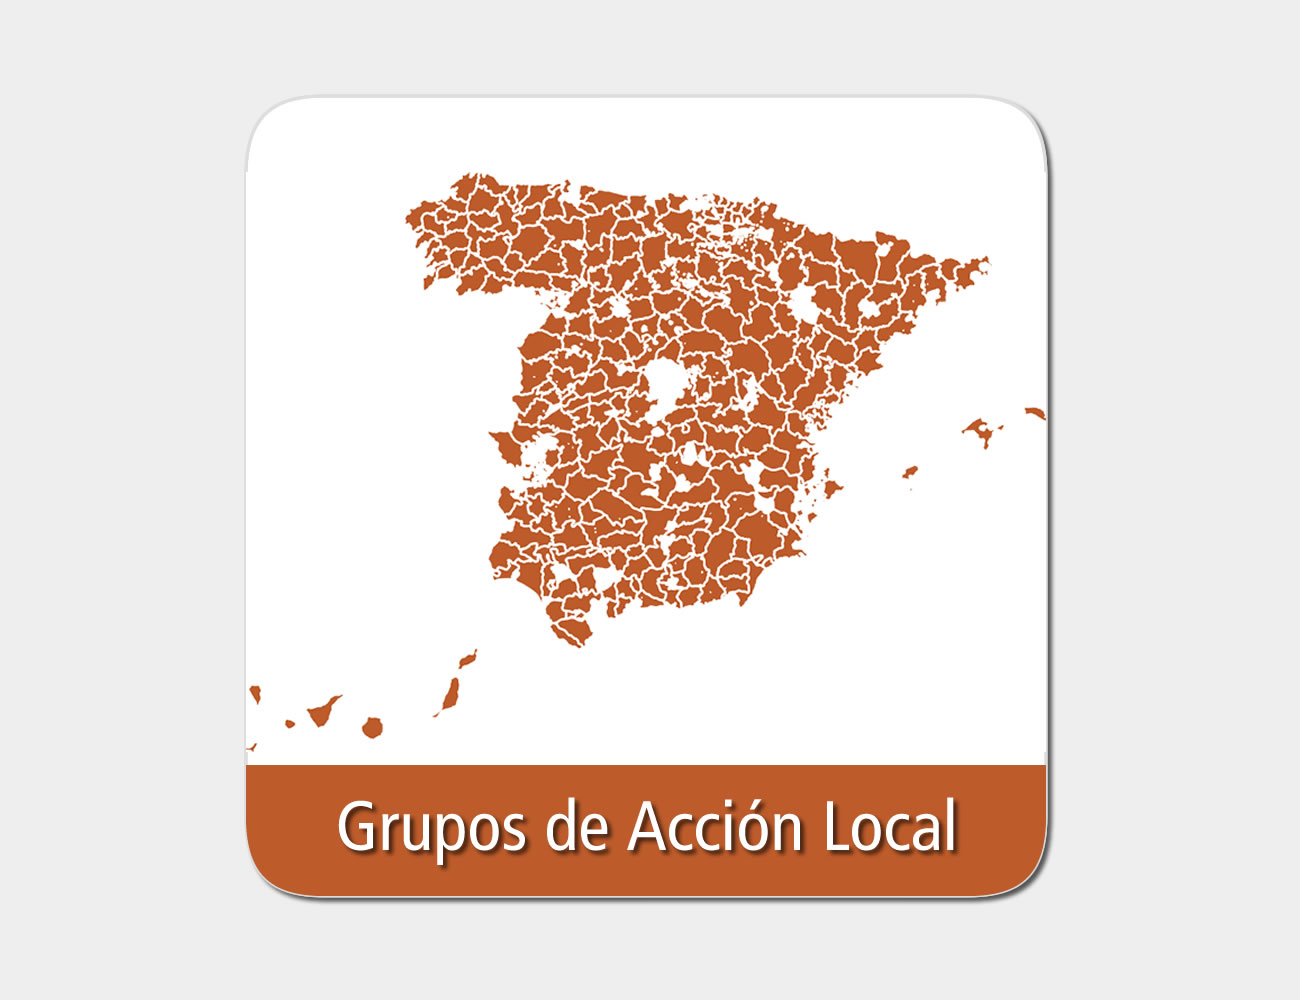 grupos_accion_local_over